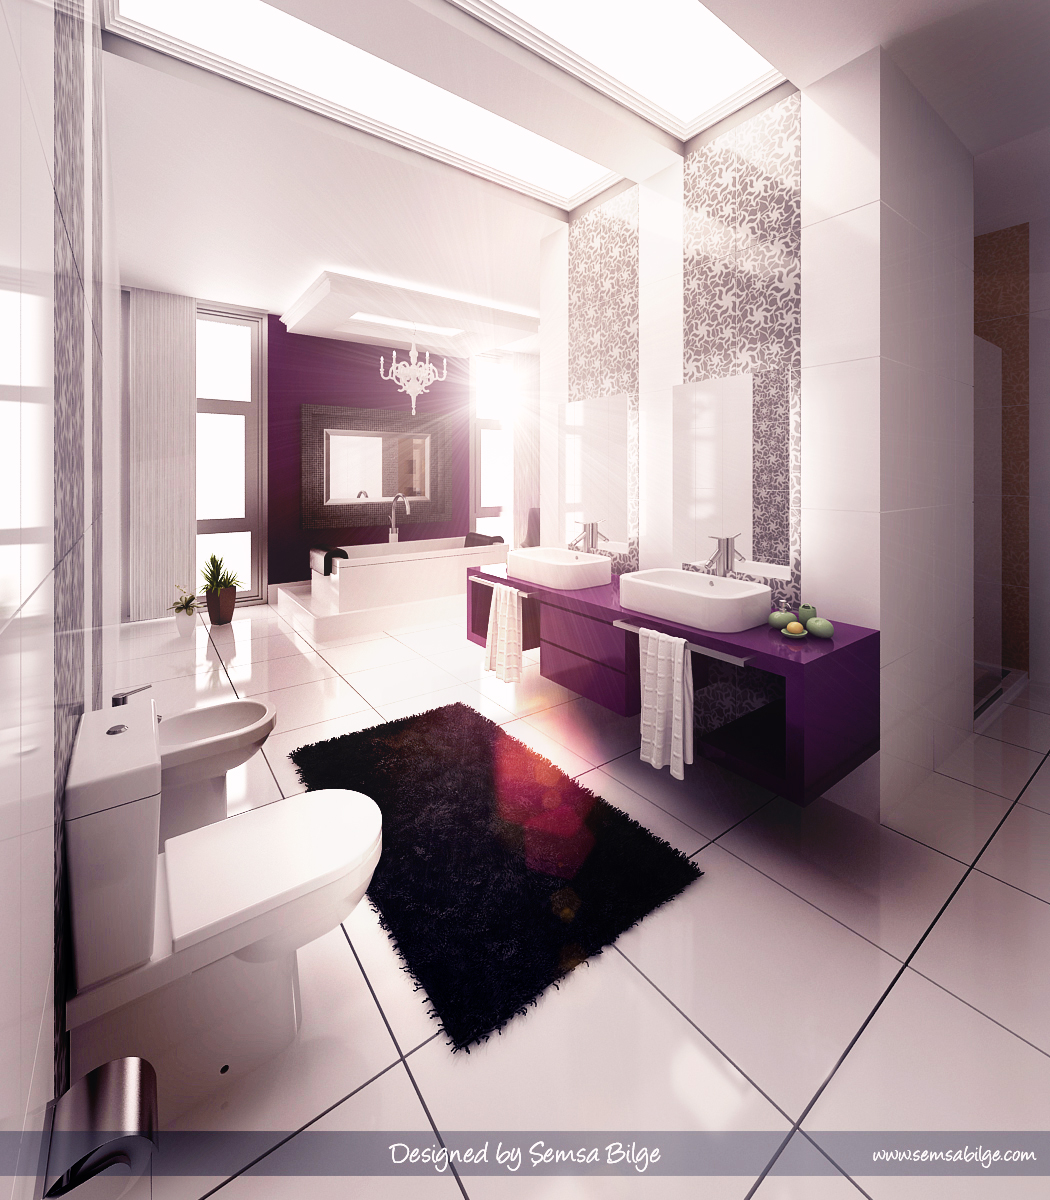 Beautiful bathroom designs ideas interior design for Bathroom designs images